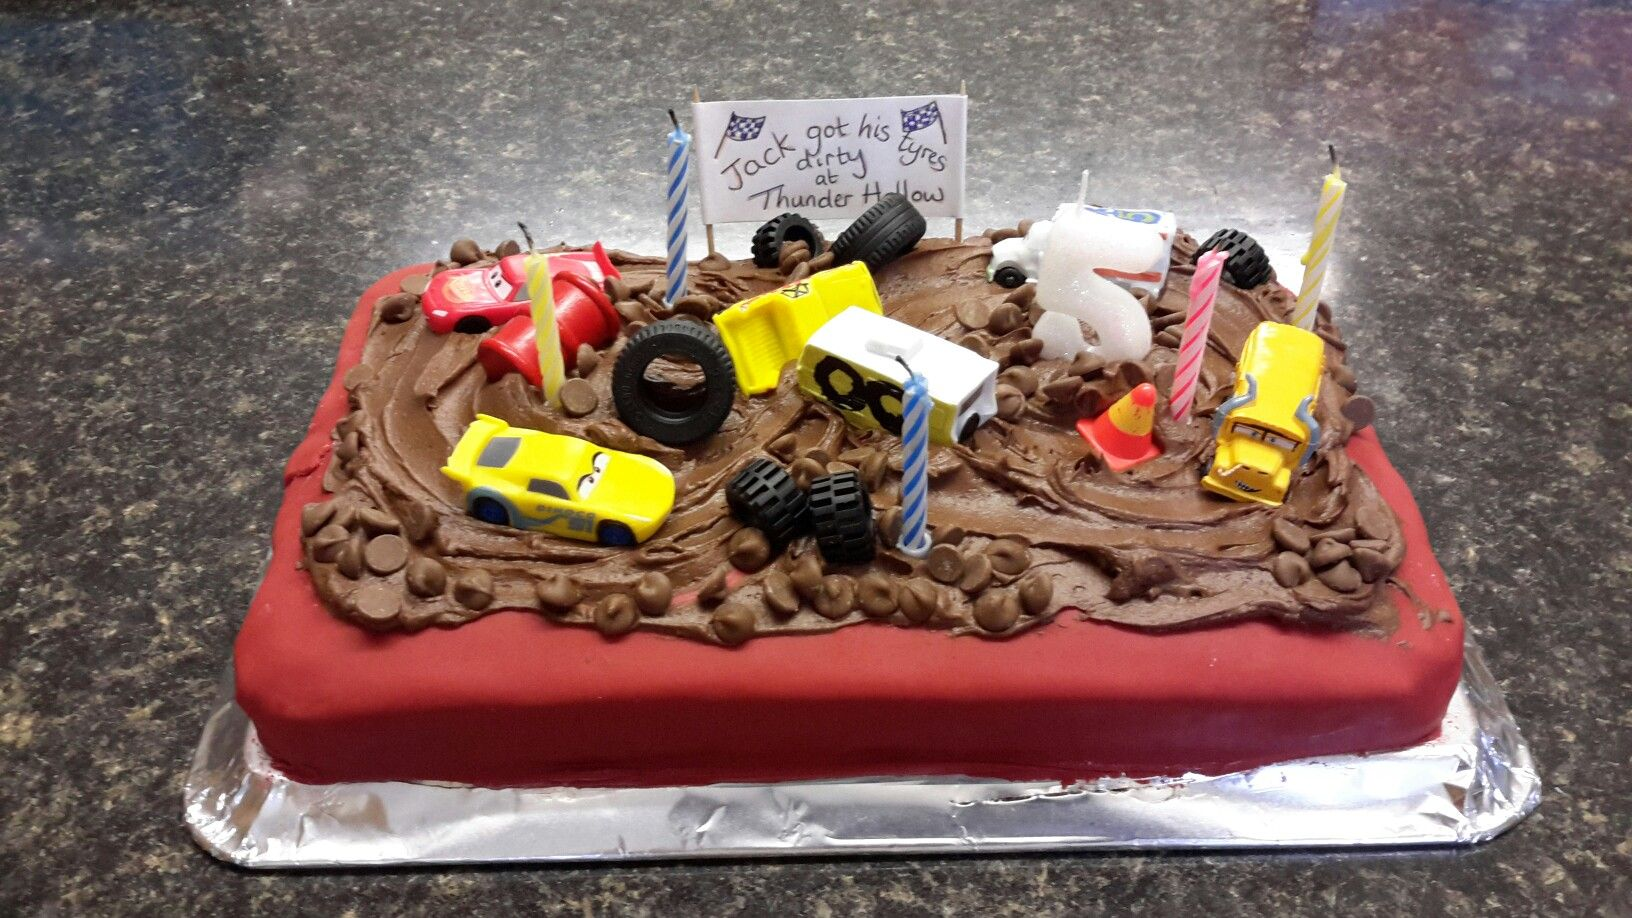 Thunder hollow cake cars 3 f te enfant noong 2019 anniversaire fete enfant at enfant - Coloriage cars 3 thunder hollow ...